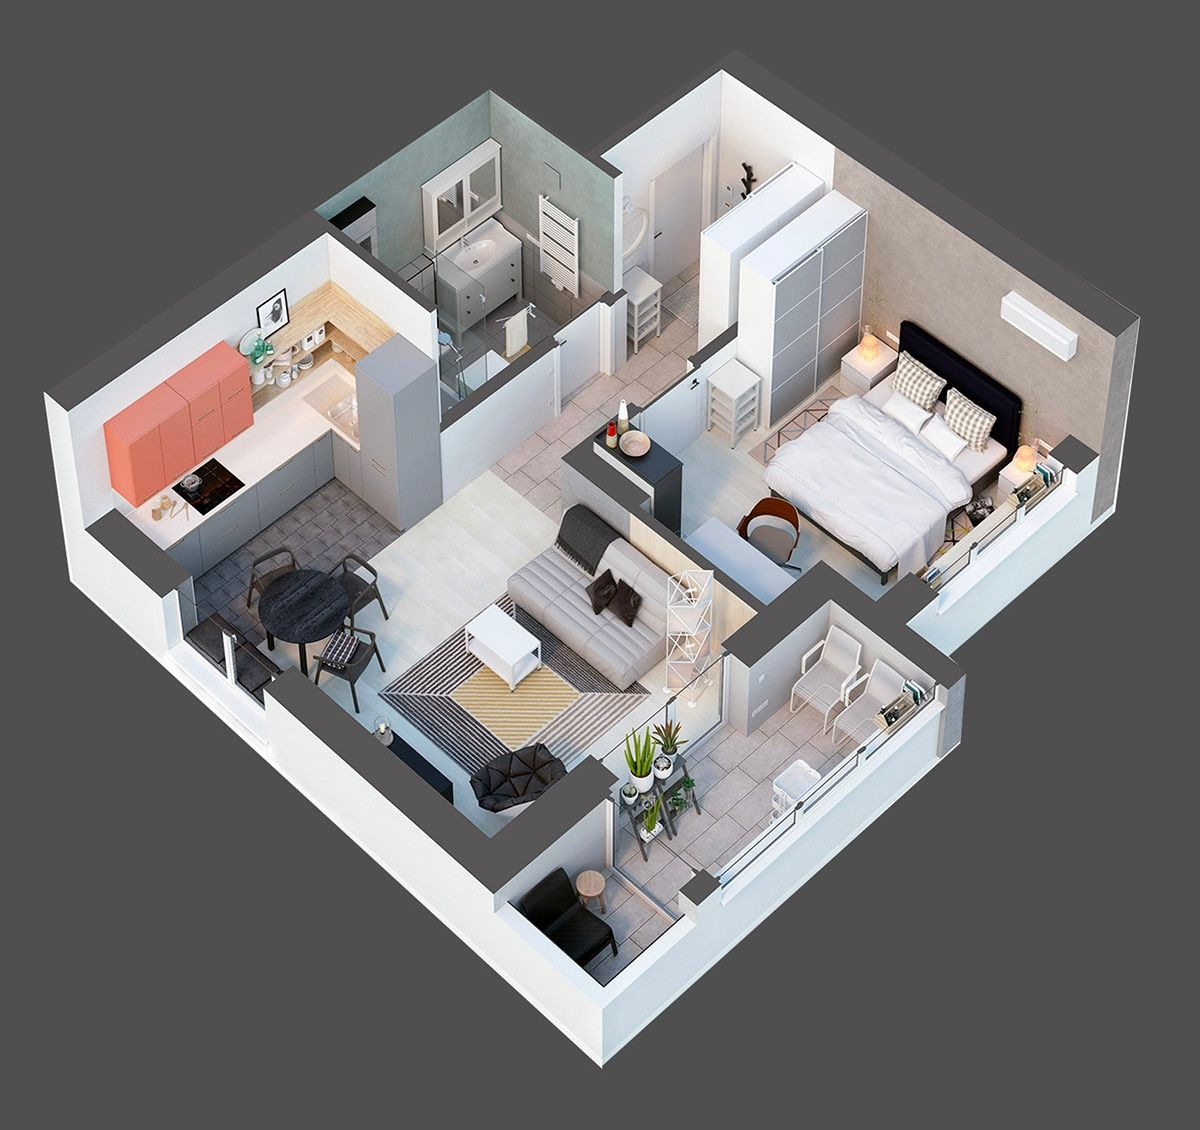 4 Small Apartment Designs Under 50 Square Meters Small Apartment Design Small Apartment Floor Plans Apartment Layout